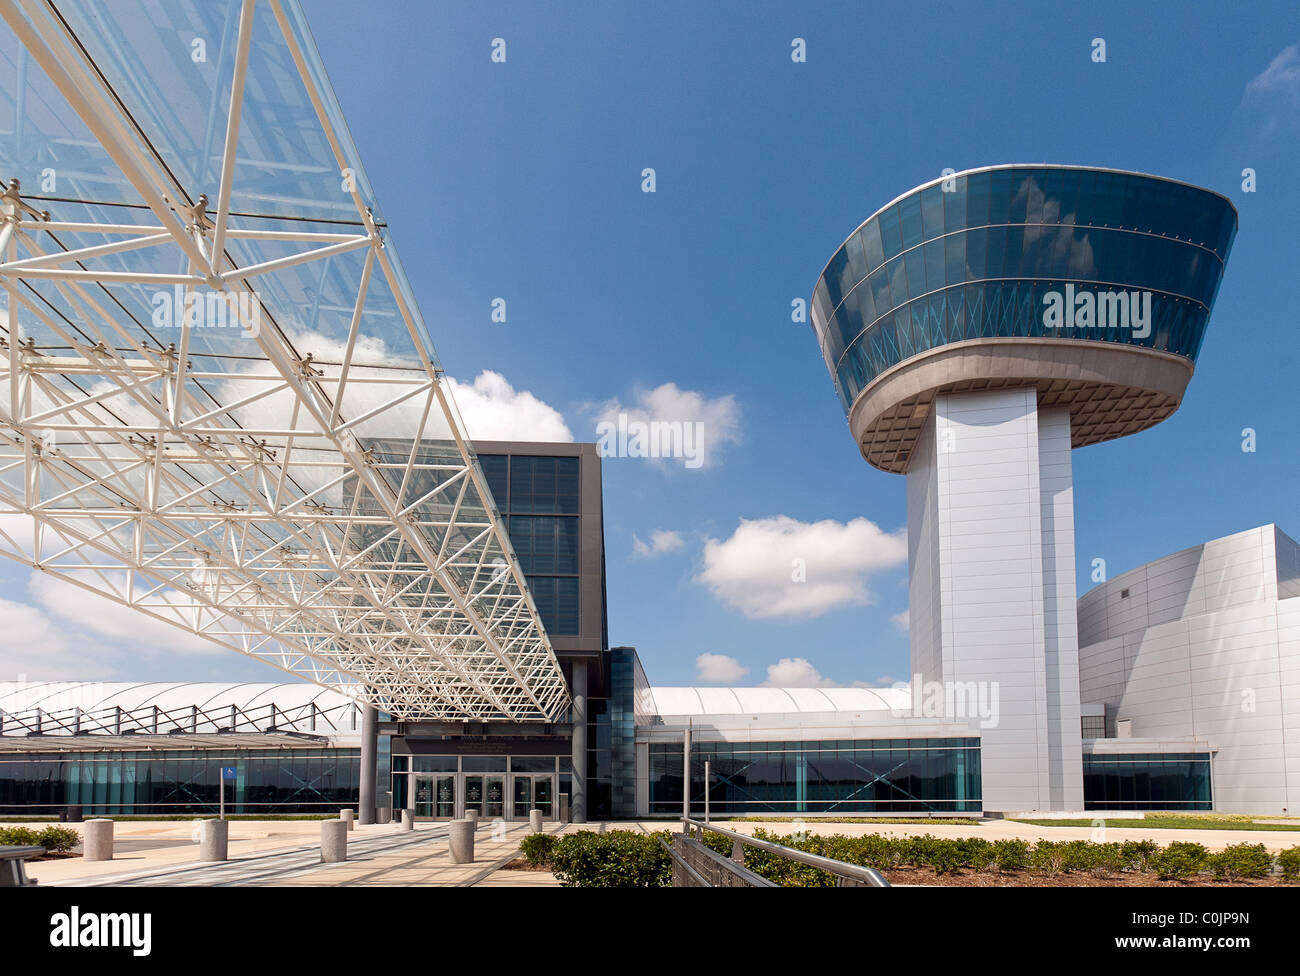 The Steven F. Udvar-Hazy Center - division of the Smithsonian Museum, Washington, DC. - at the Washington Dulles - Stock Image